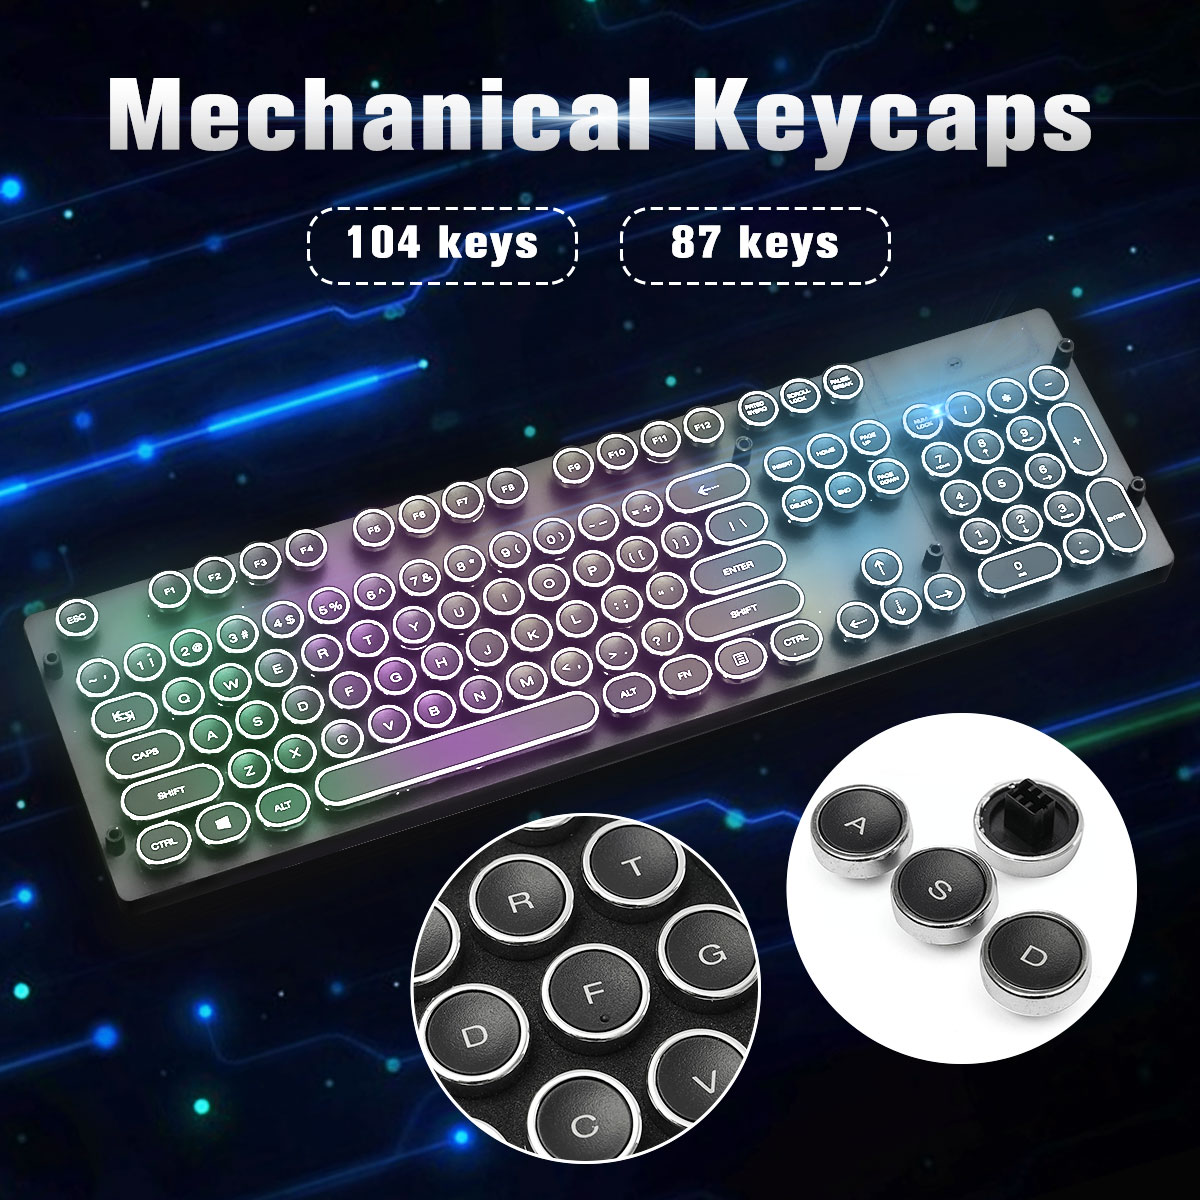 Computer & Office 100% True 104 Keys Steampunk Round Golden Silver Black White Keycap Key Cap Keycaps Ansi Layout For Cherry Mx Gaming Mechanical Keyboard Computer Peripherals